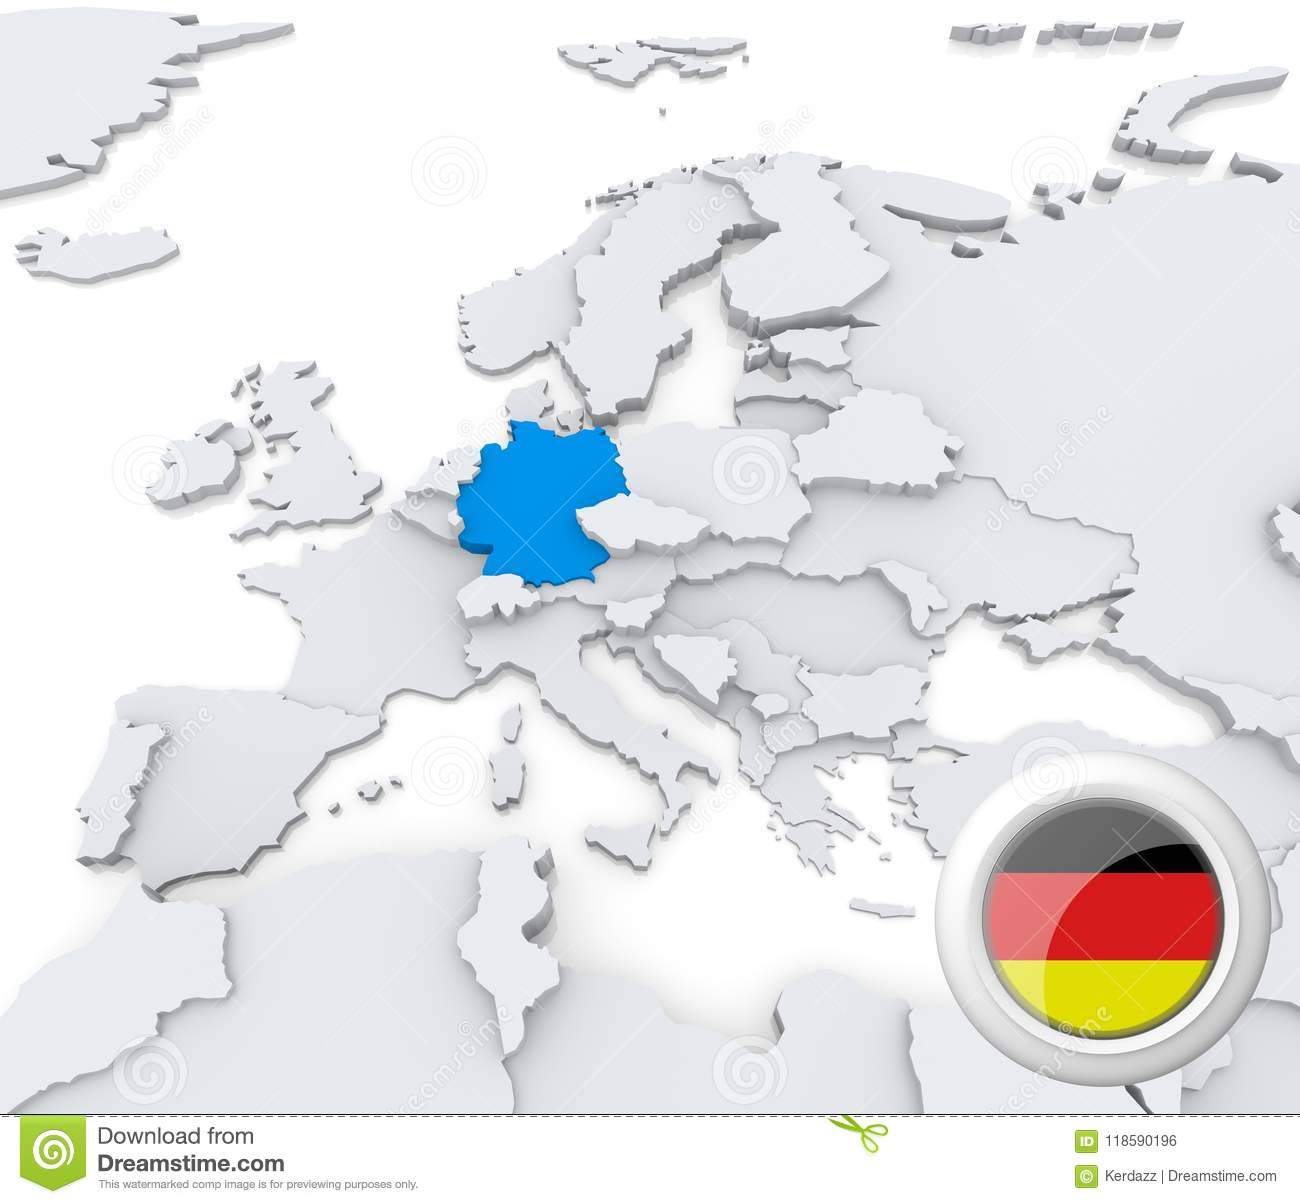 Map Of Europe With Germany Highlighted.Germany On Map Of Europe Stock Illustration Illustration Of Button